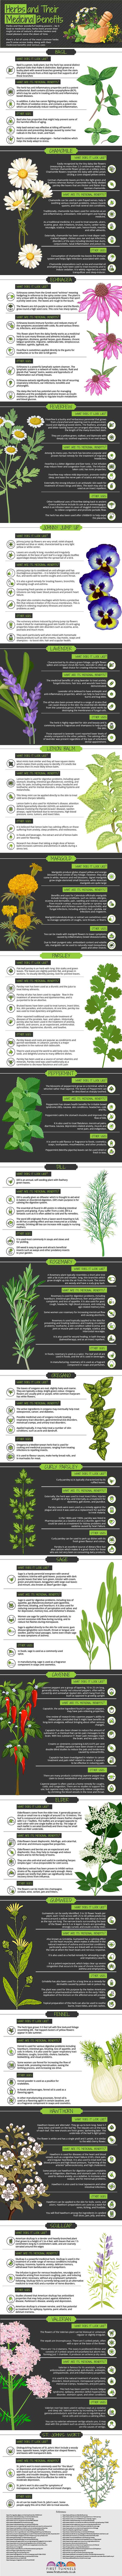 Herbs and Their Medicinal Benefits Infographic